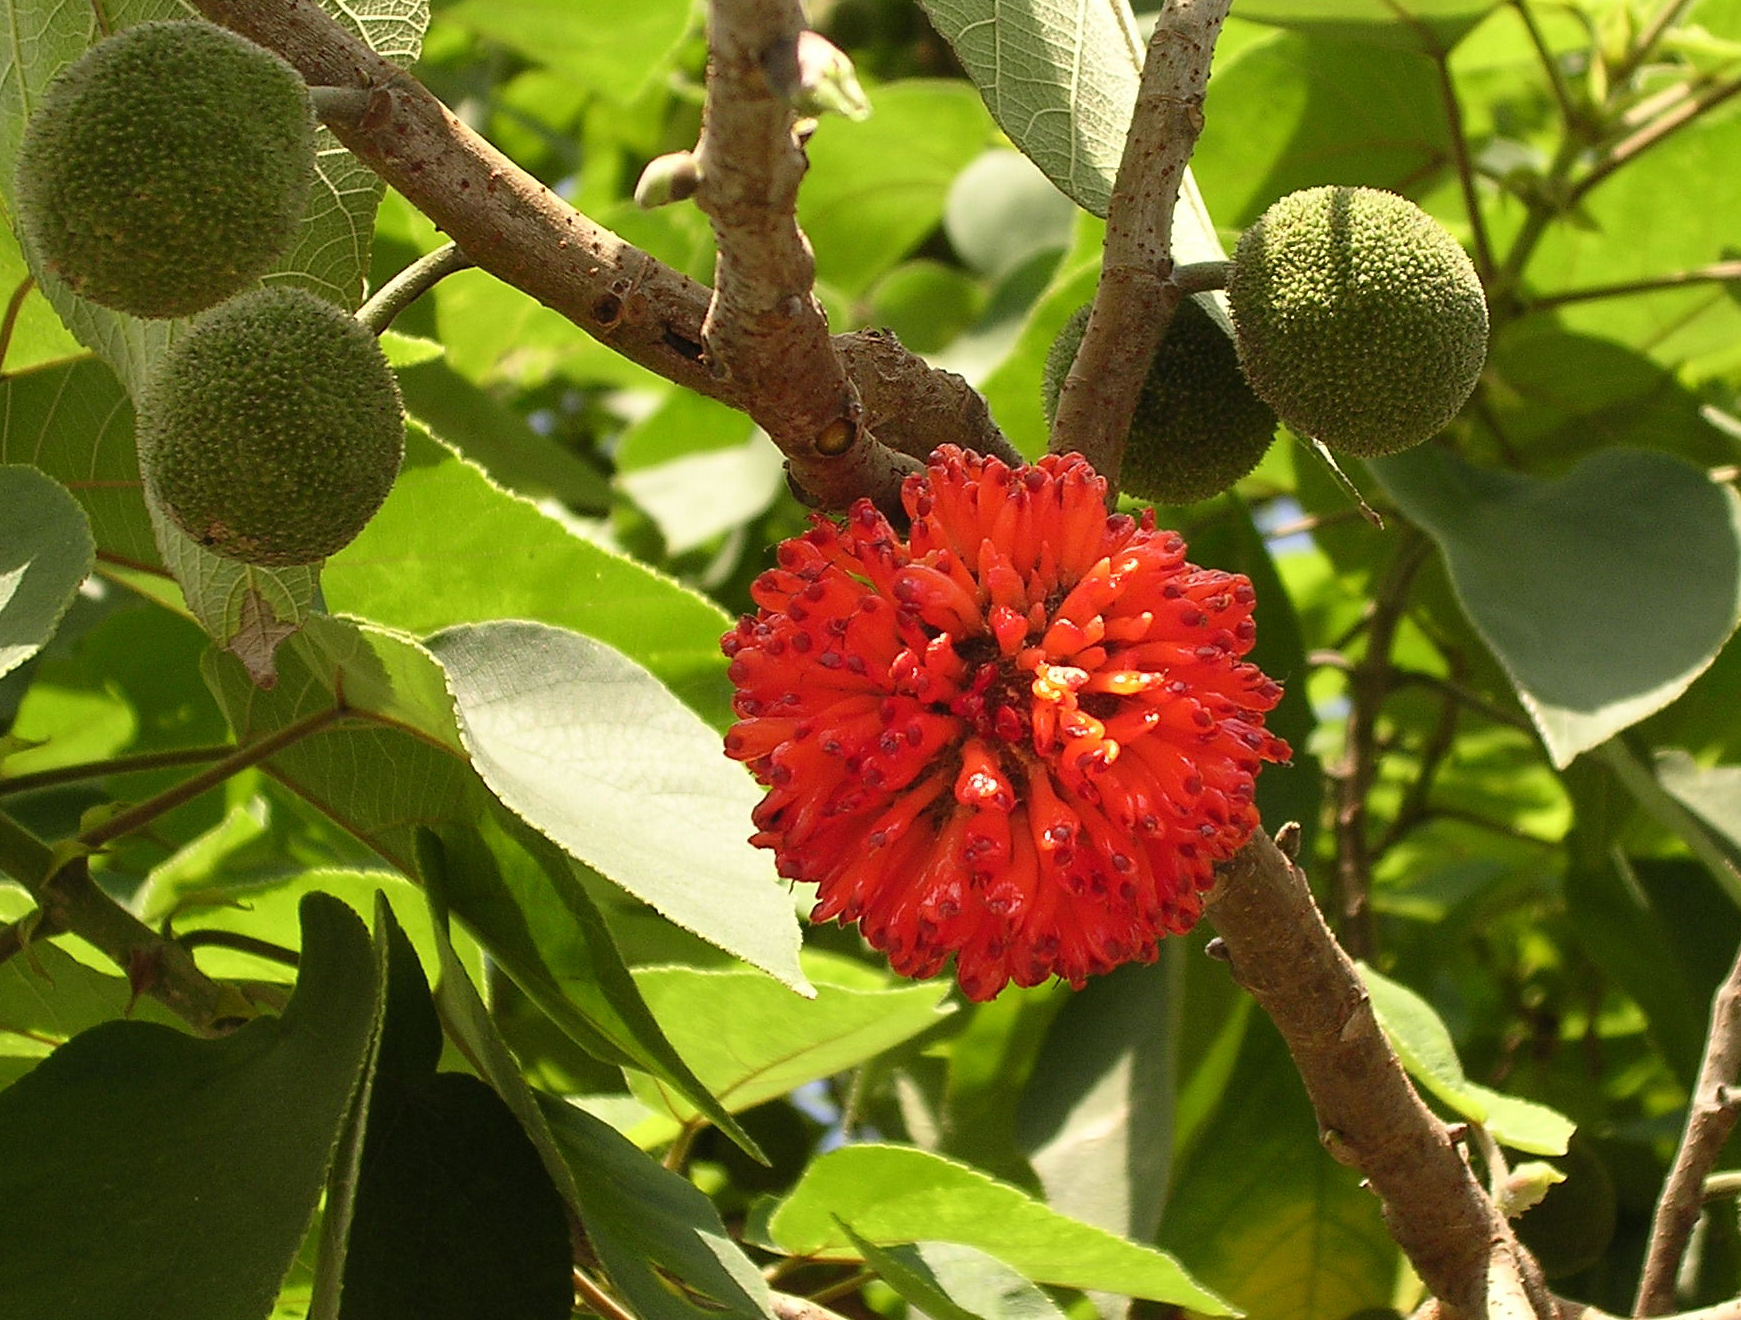 Paper Mulberry Facts And Health Benefits